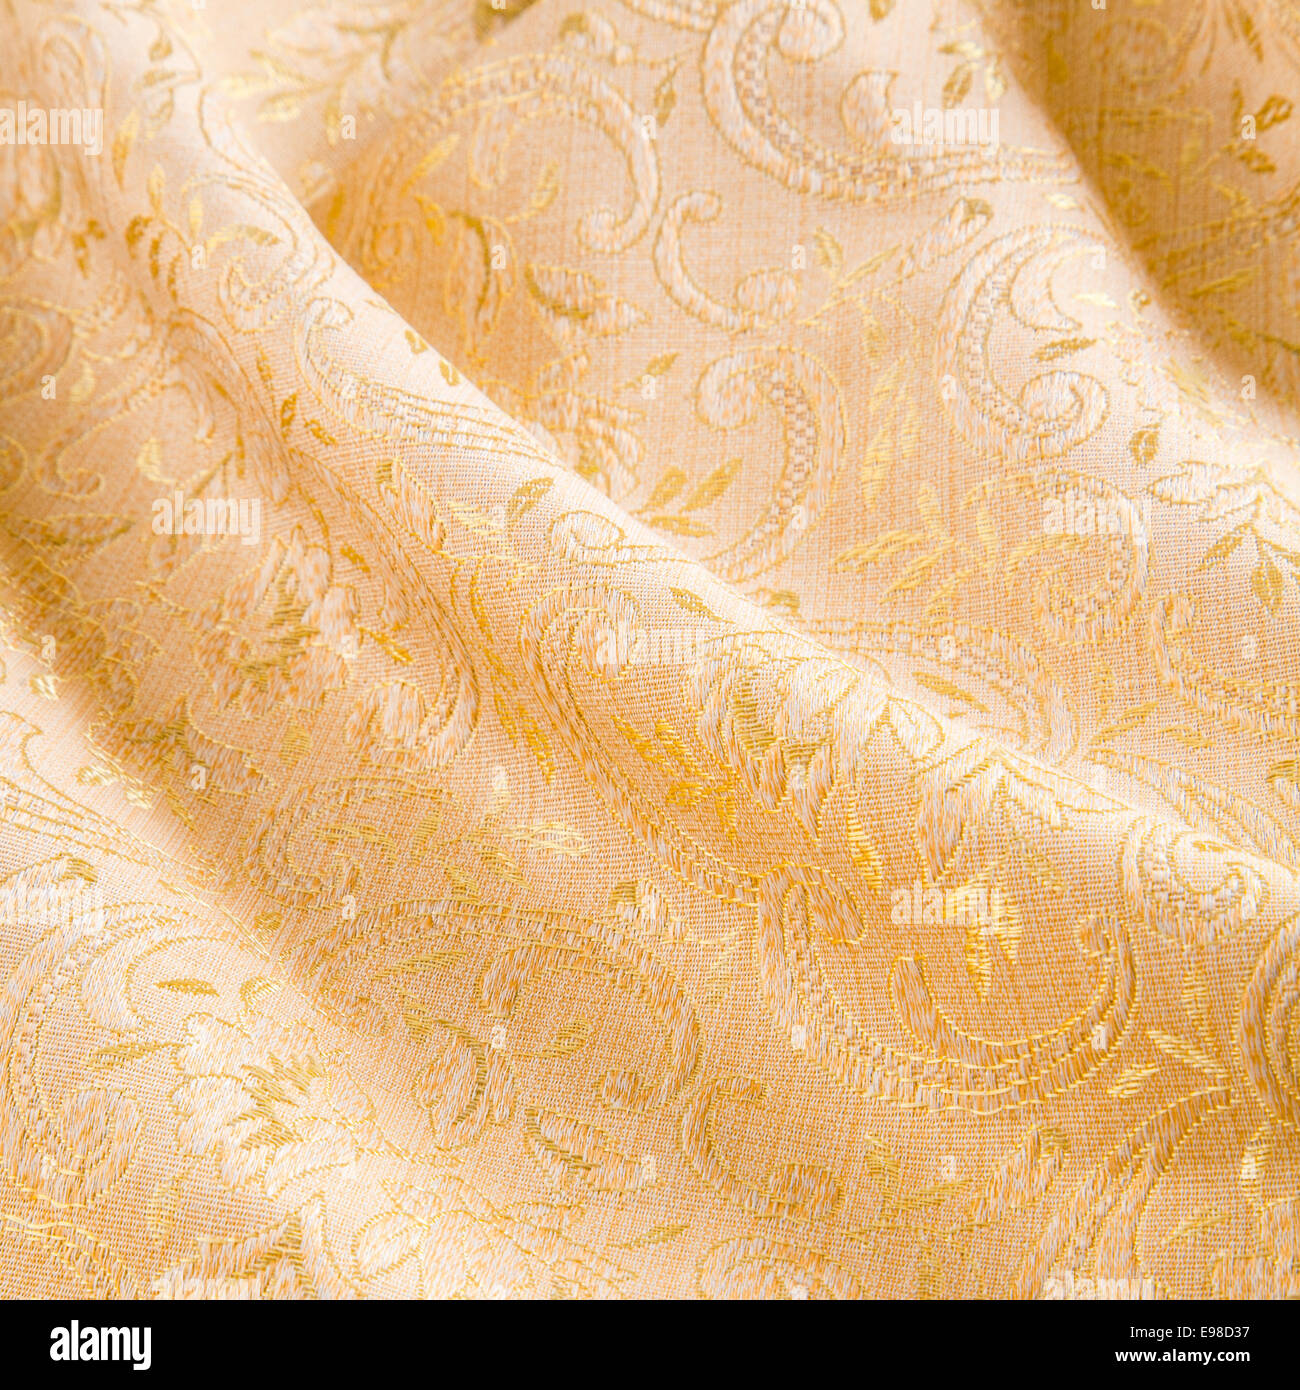 Luxurious gold damask fabric with a self pattern of acanthus leaves draped in an elegant diagonal manner with soft - Stock Image